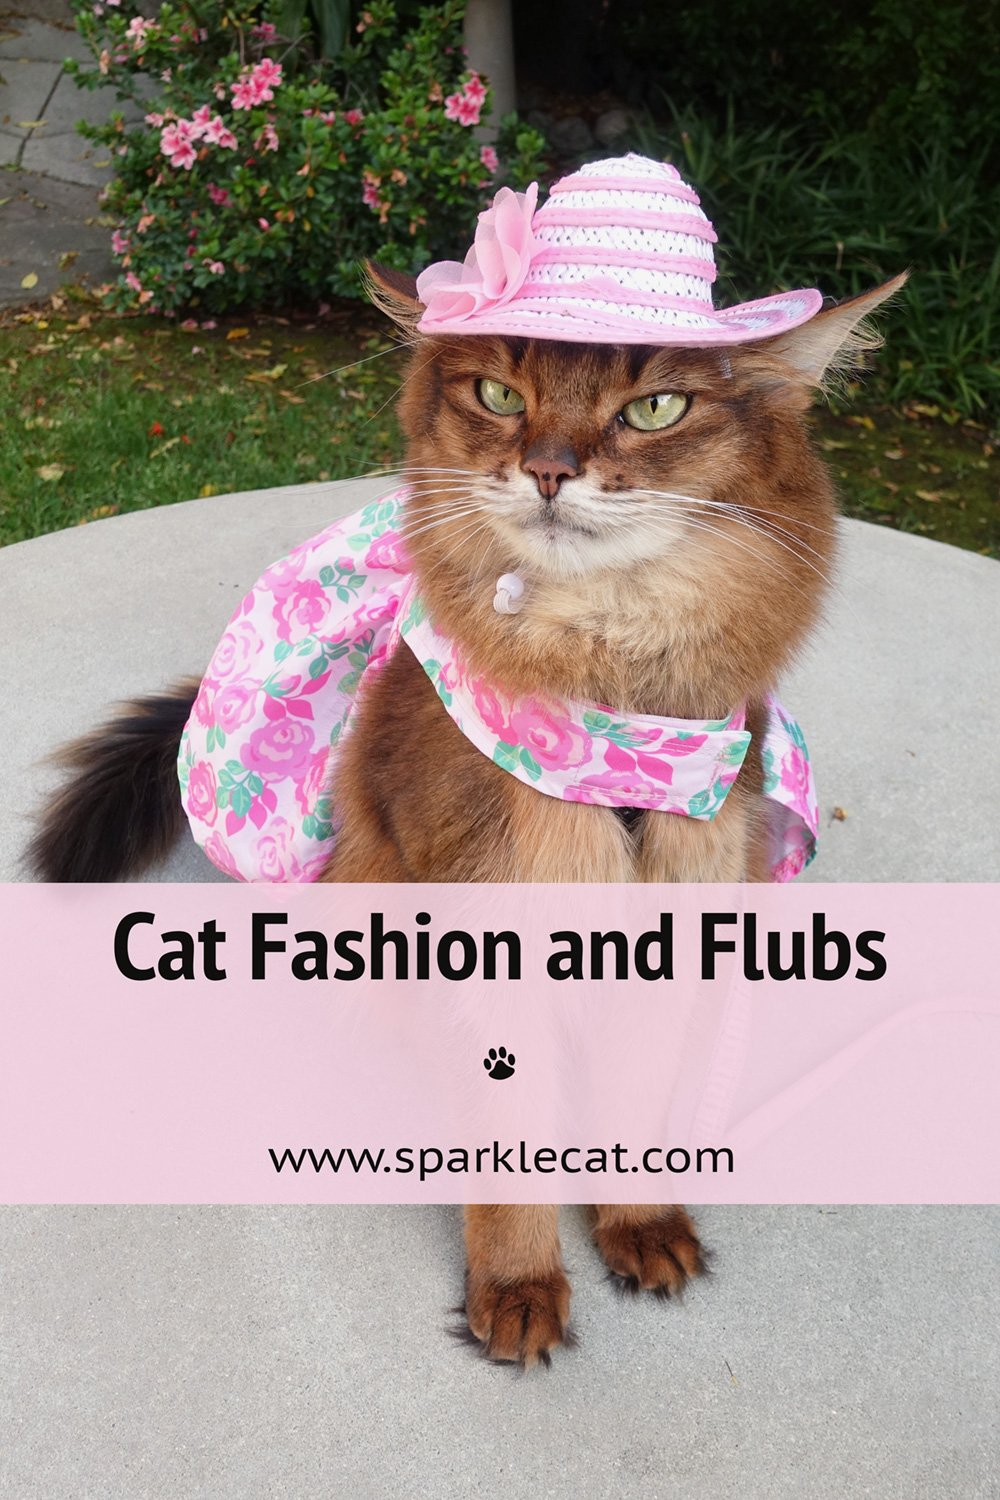 Cat Fashion and Flubs